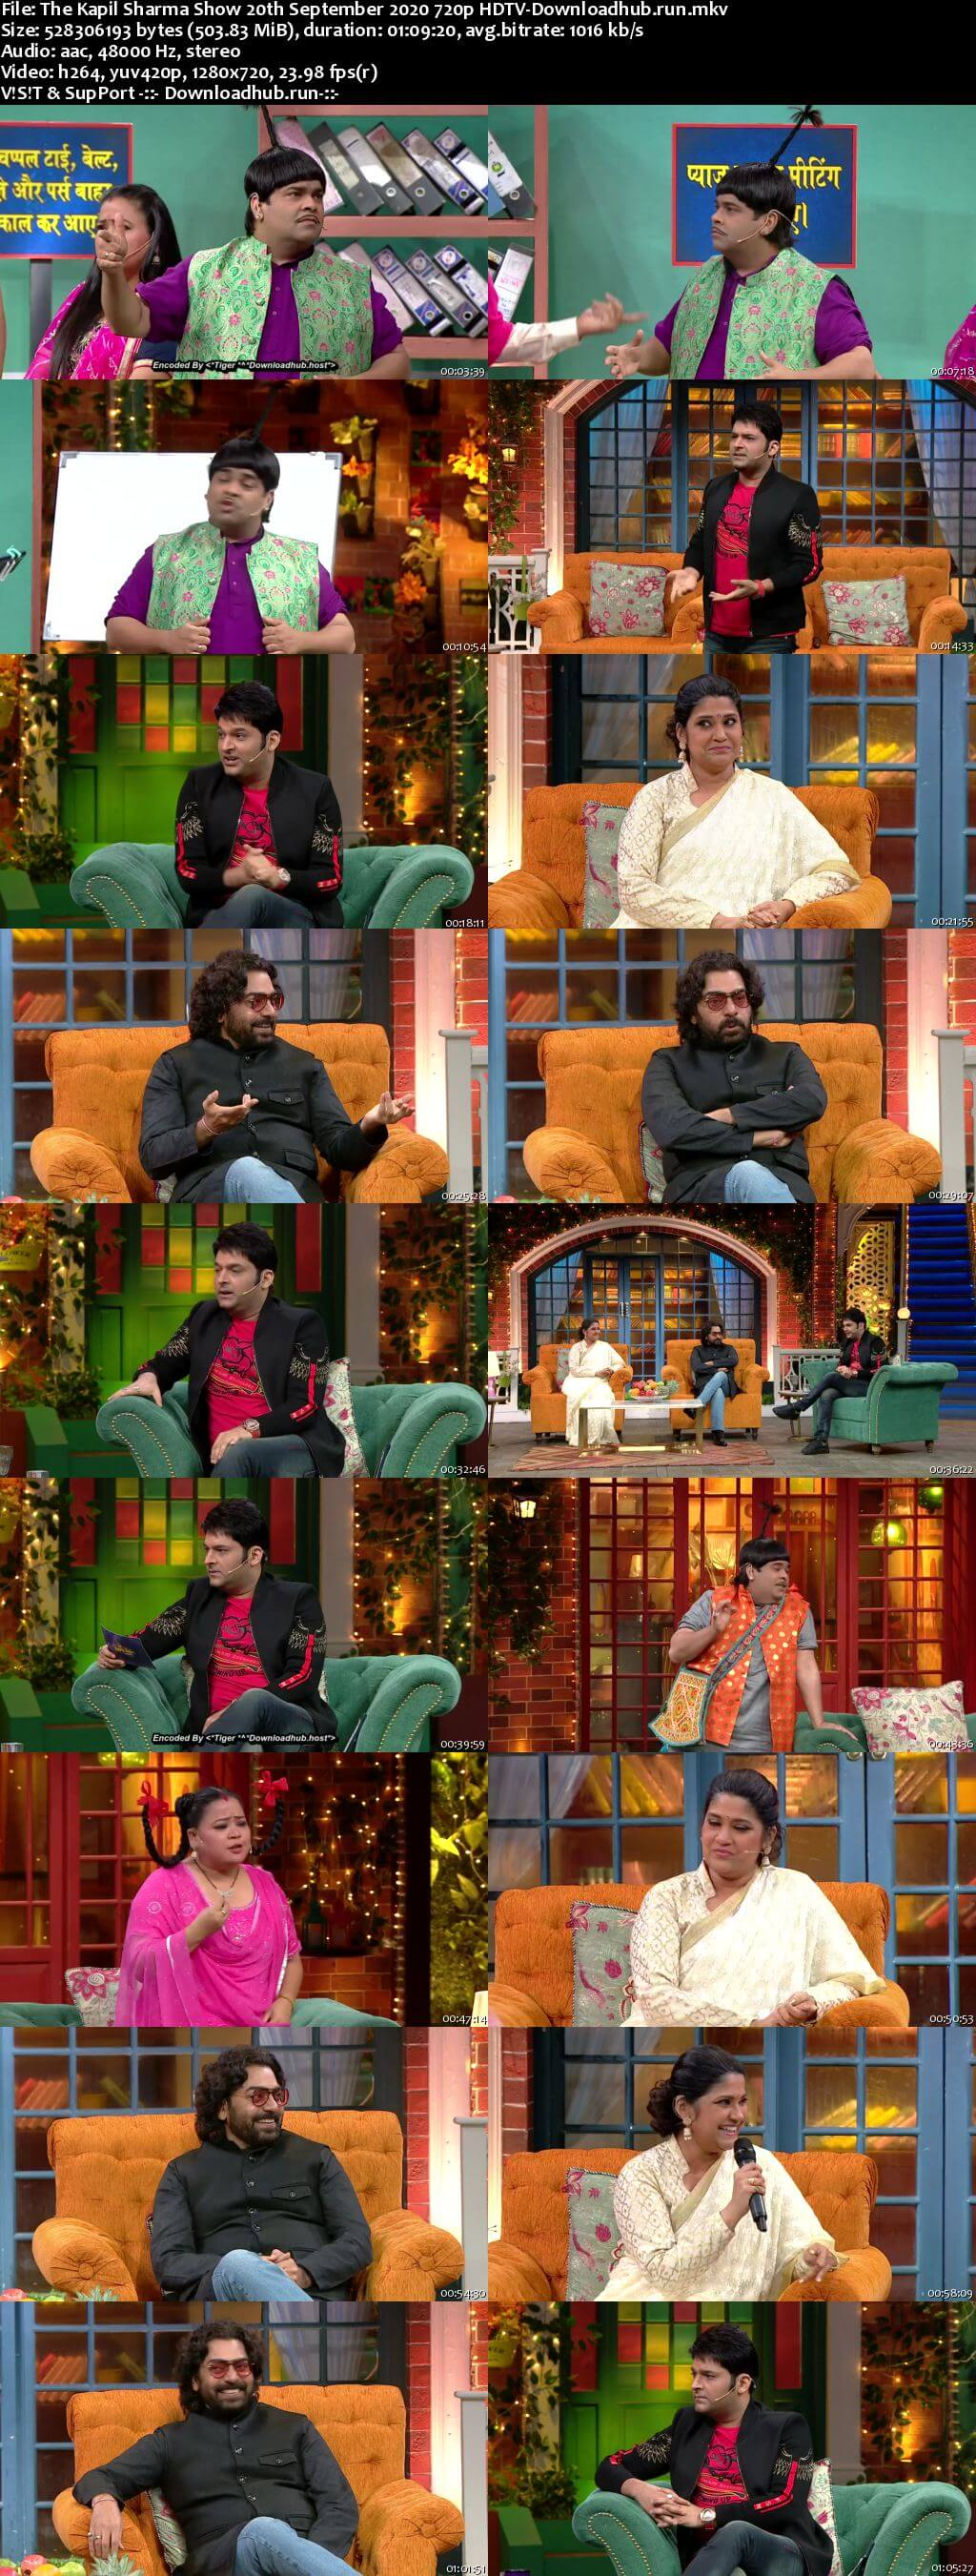 The Kapil Sharma Show 20 September 2020 Episode 143 HDTV 720p 480p